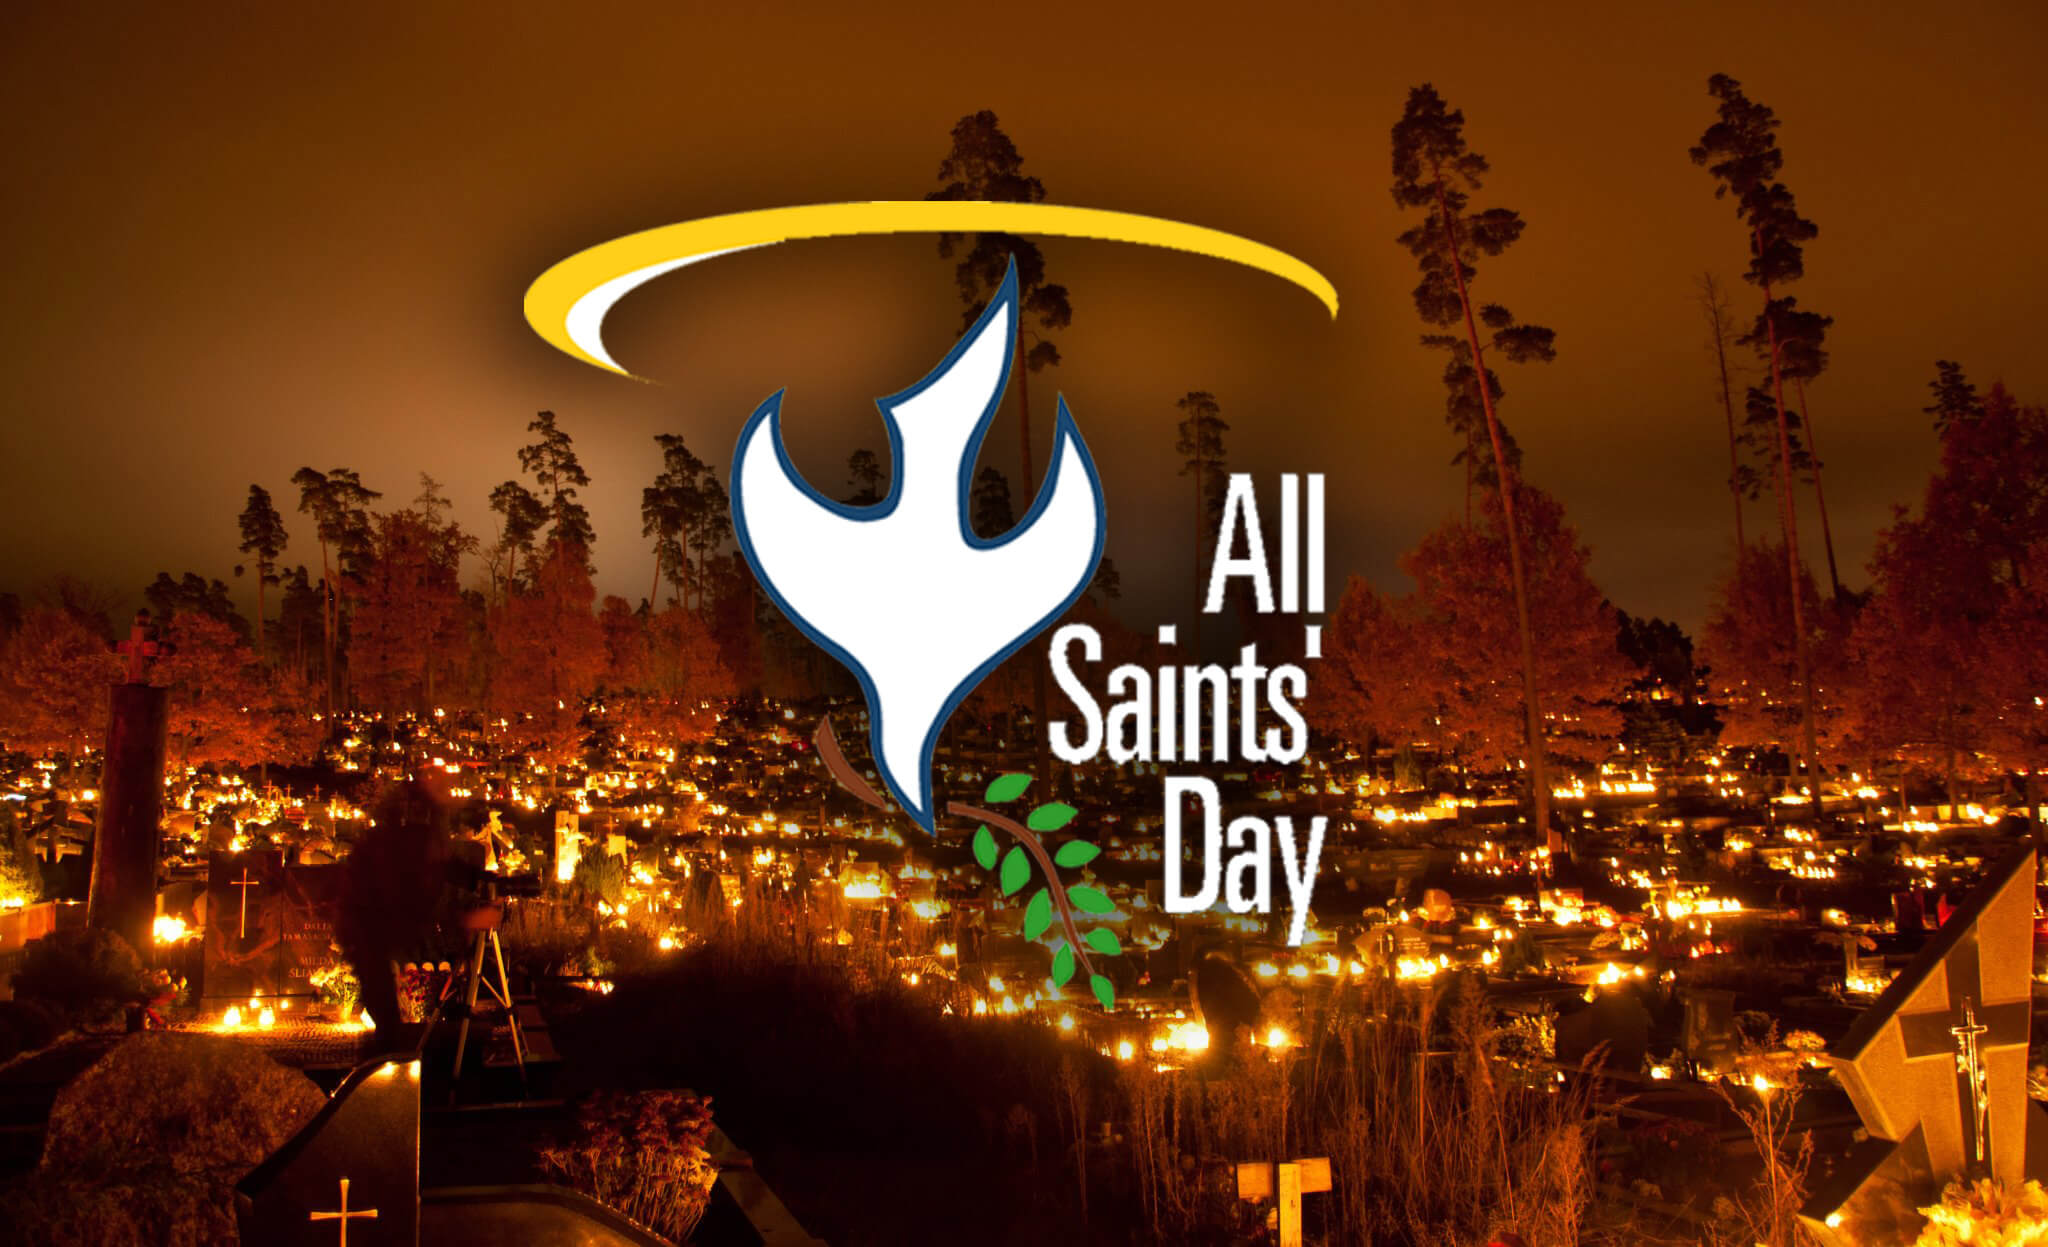 all saints day souls graveyard hd wallpaper